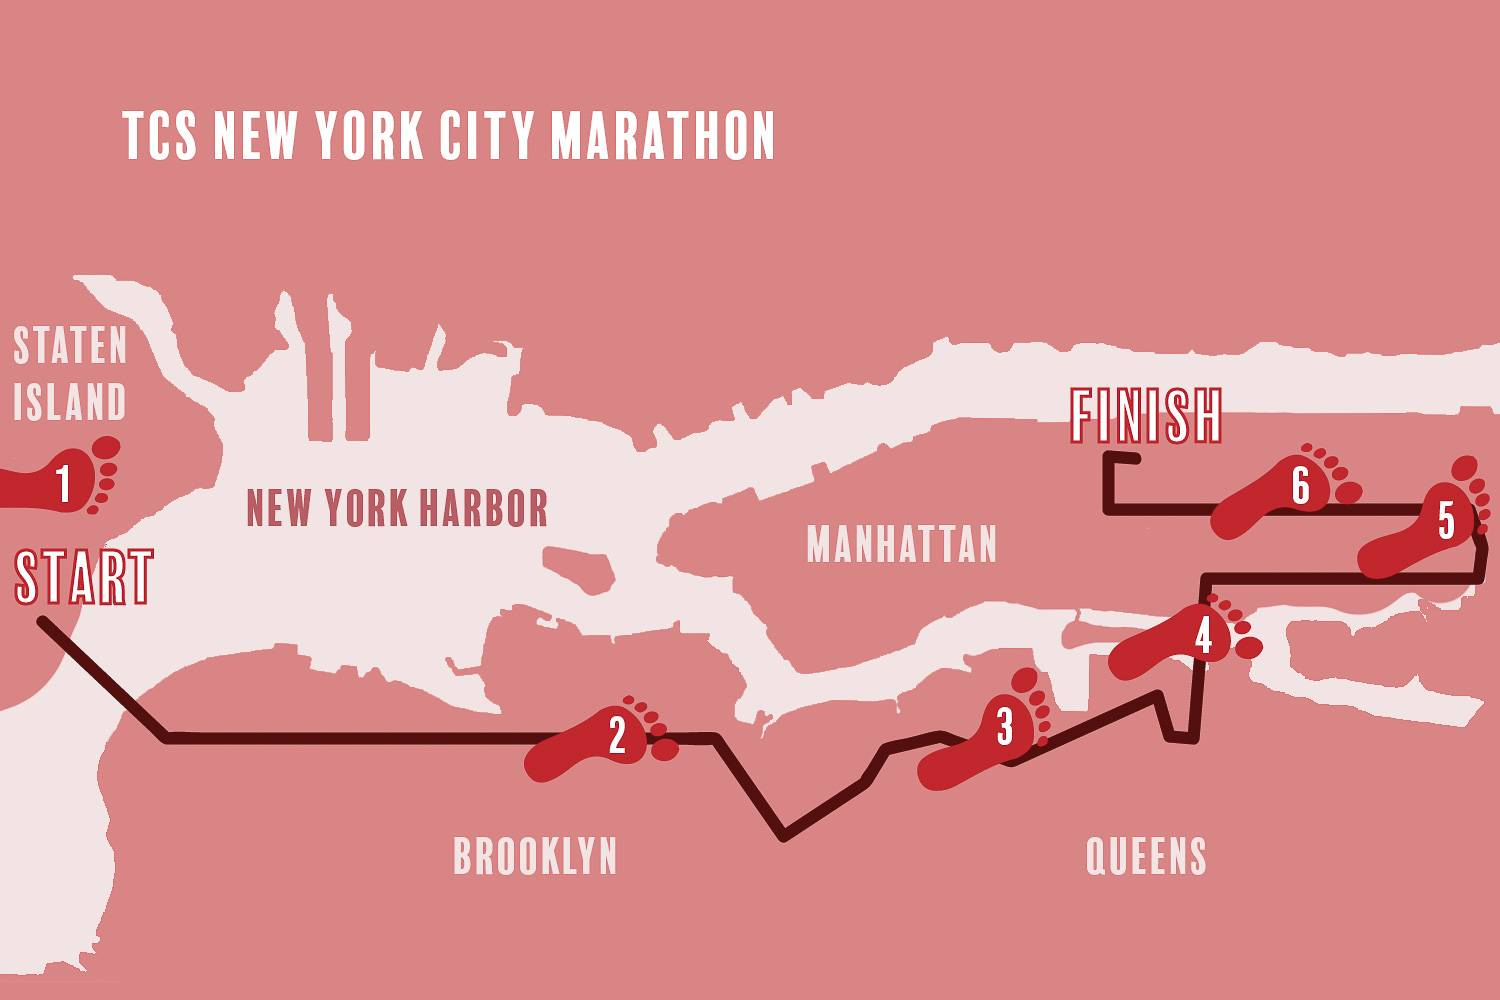 Image of a map showing the route of the New York City marathon going through all five boroughs.